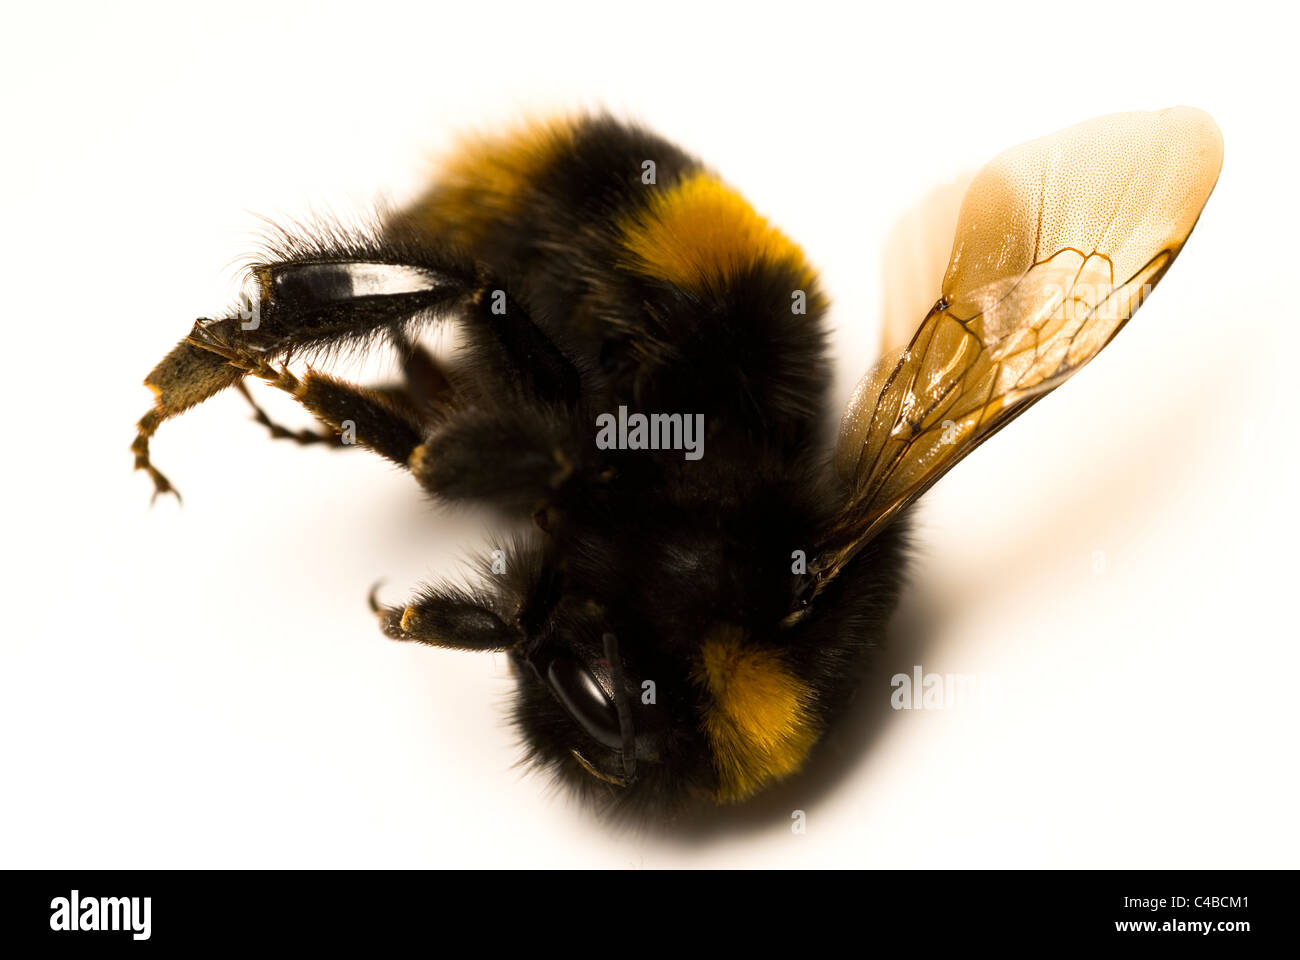 Dead bumble bee isolated on a white background - Stock Image